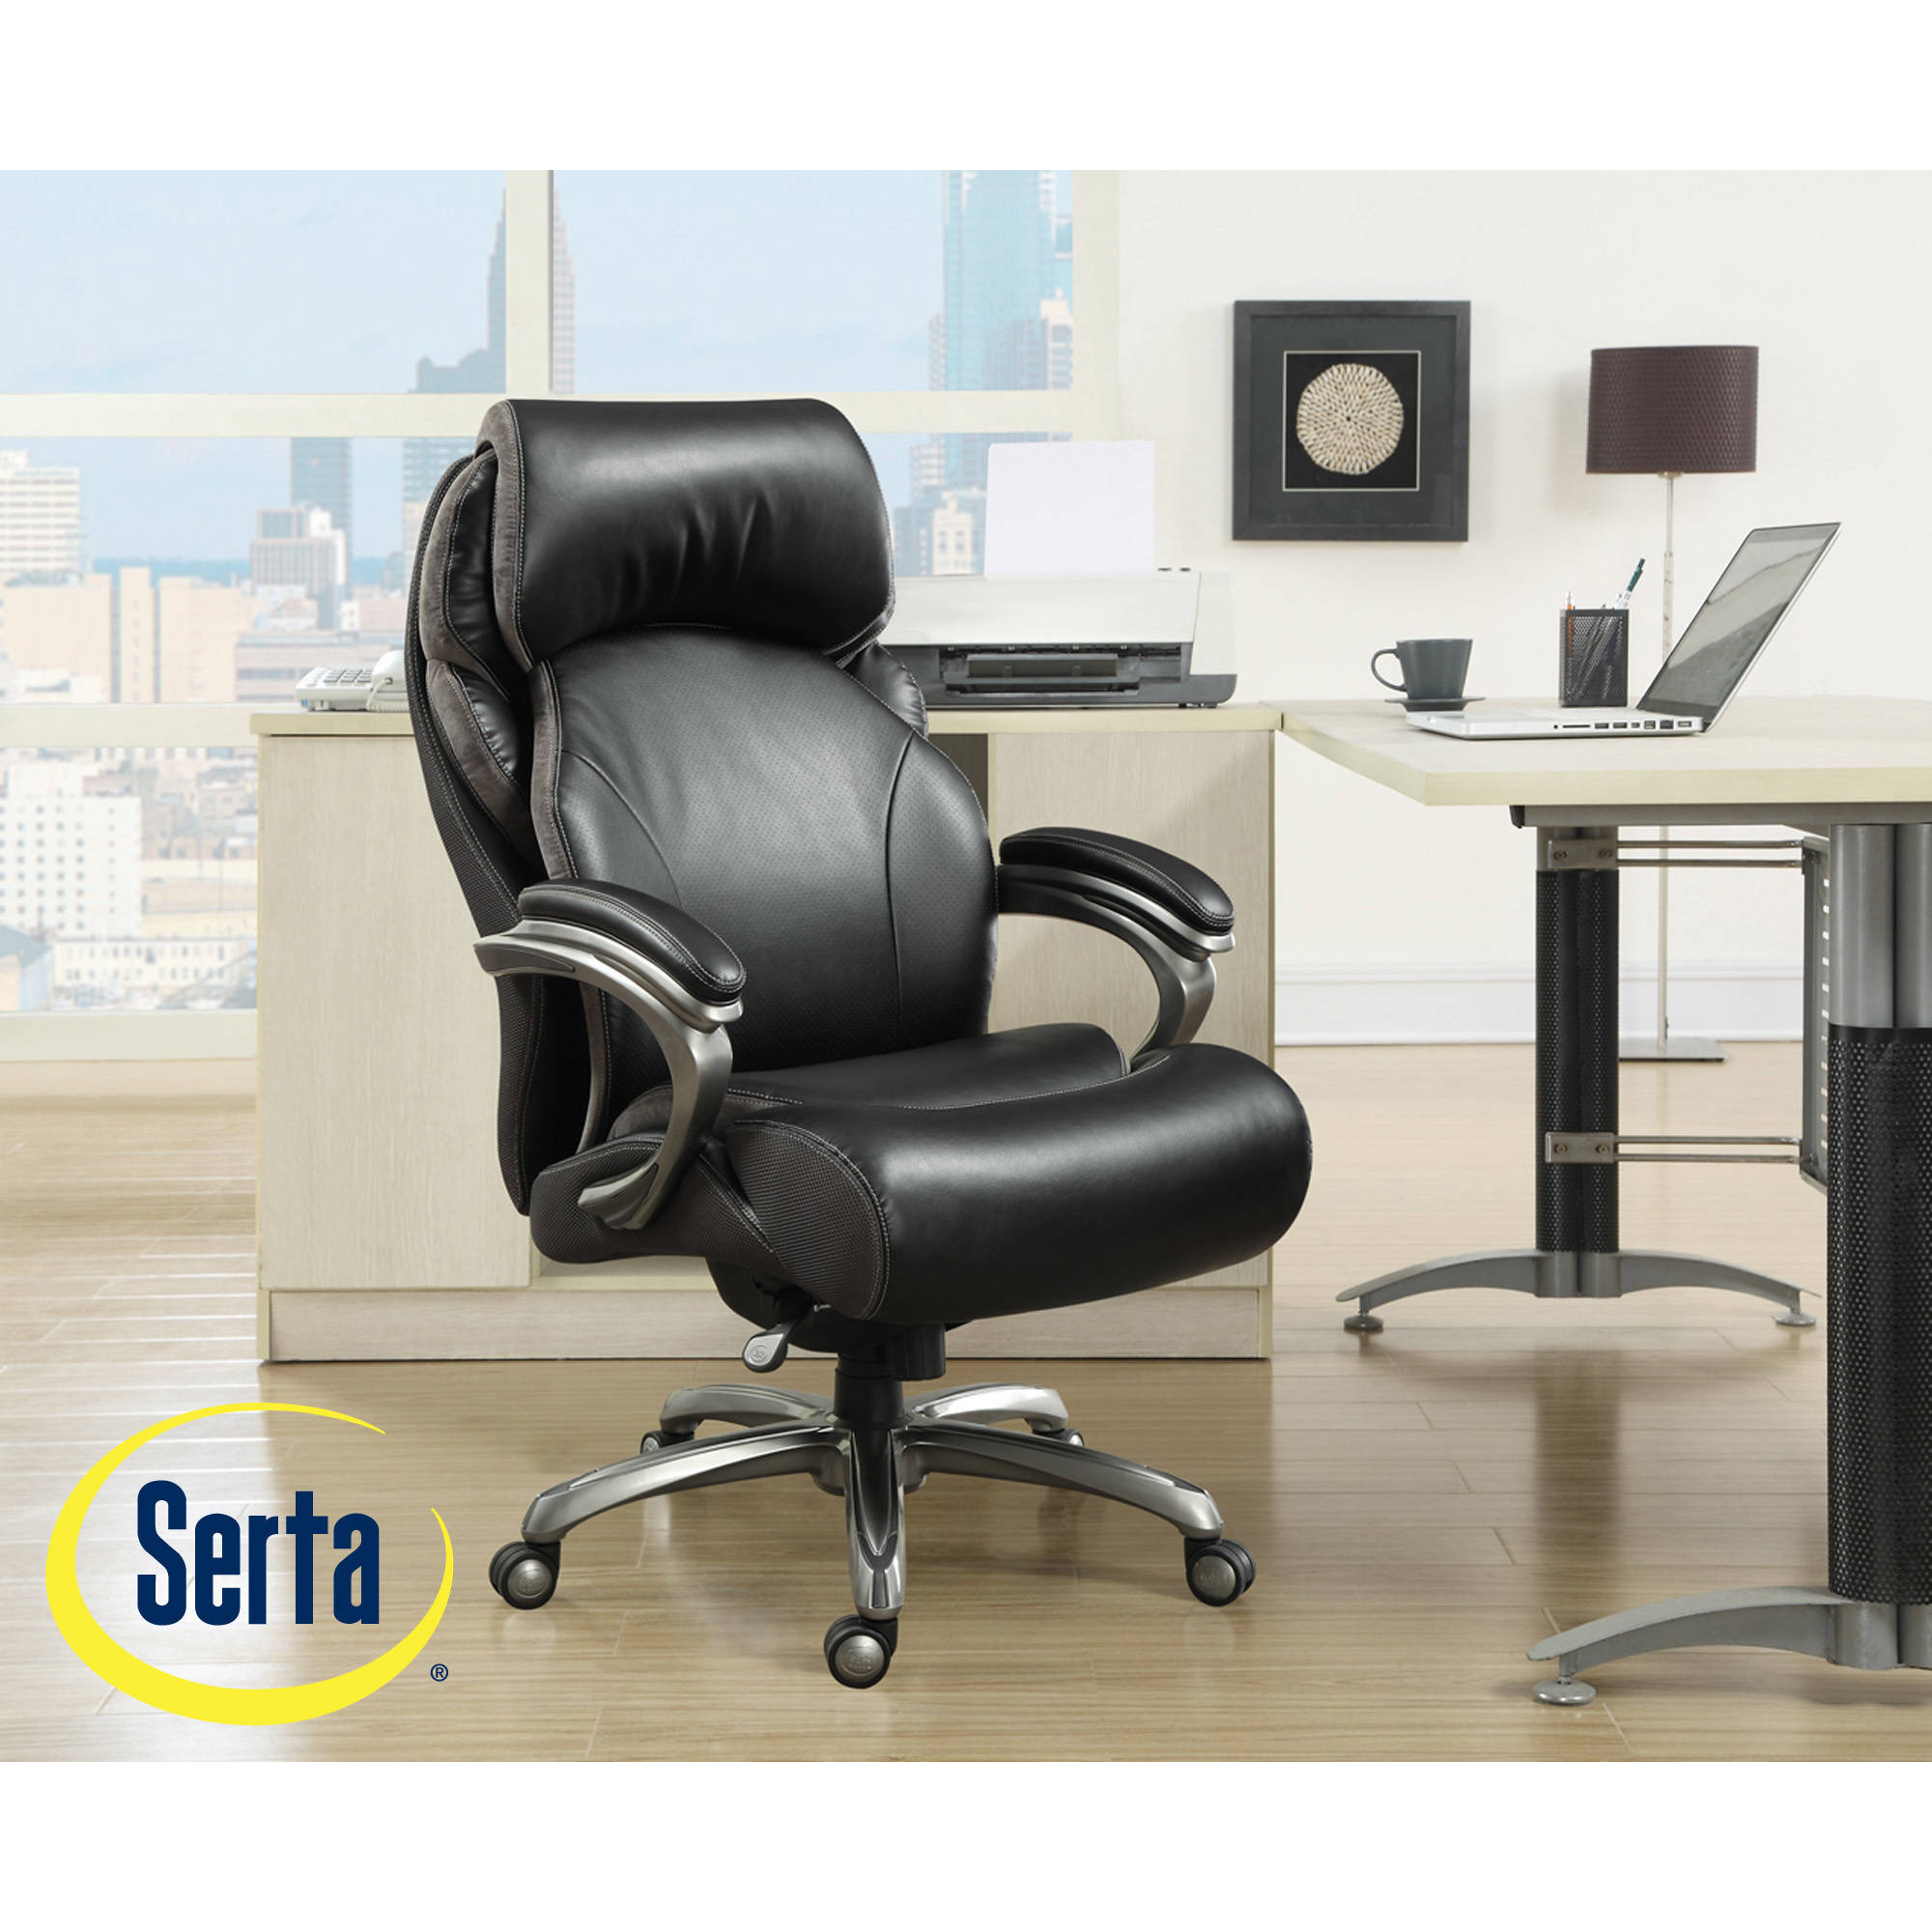 Serta Fabric Multifunction Managers Office Chair Serta Fabric